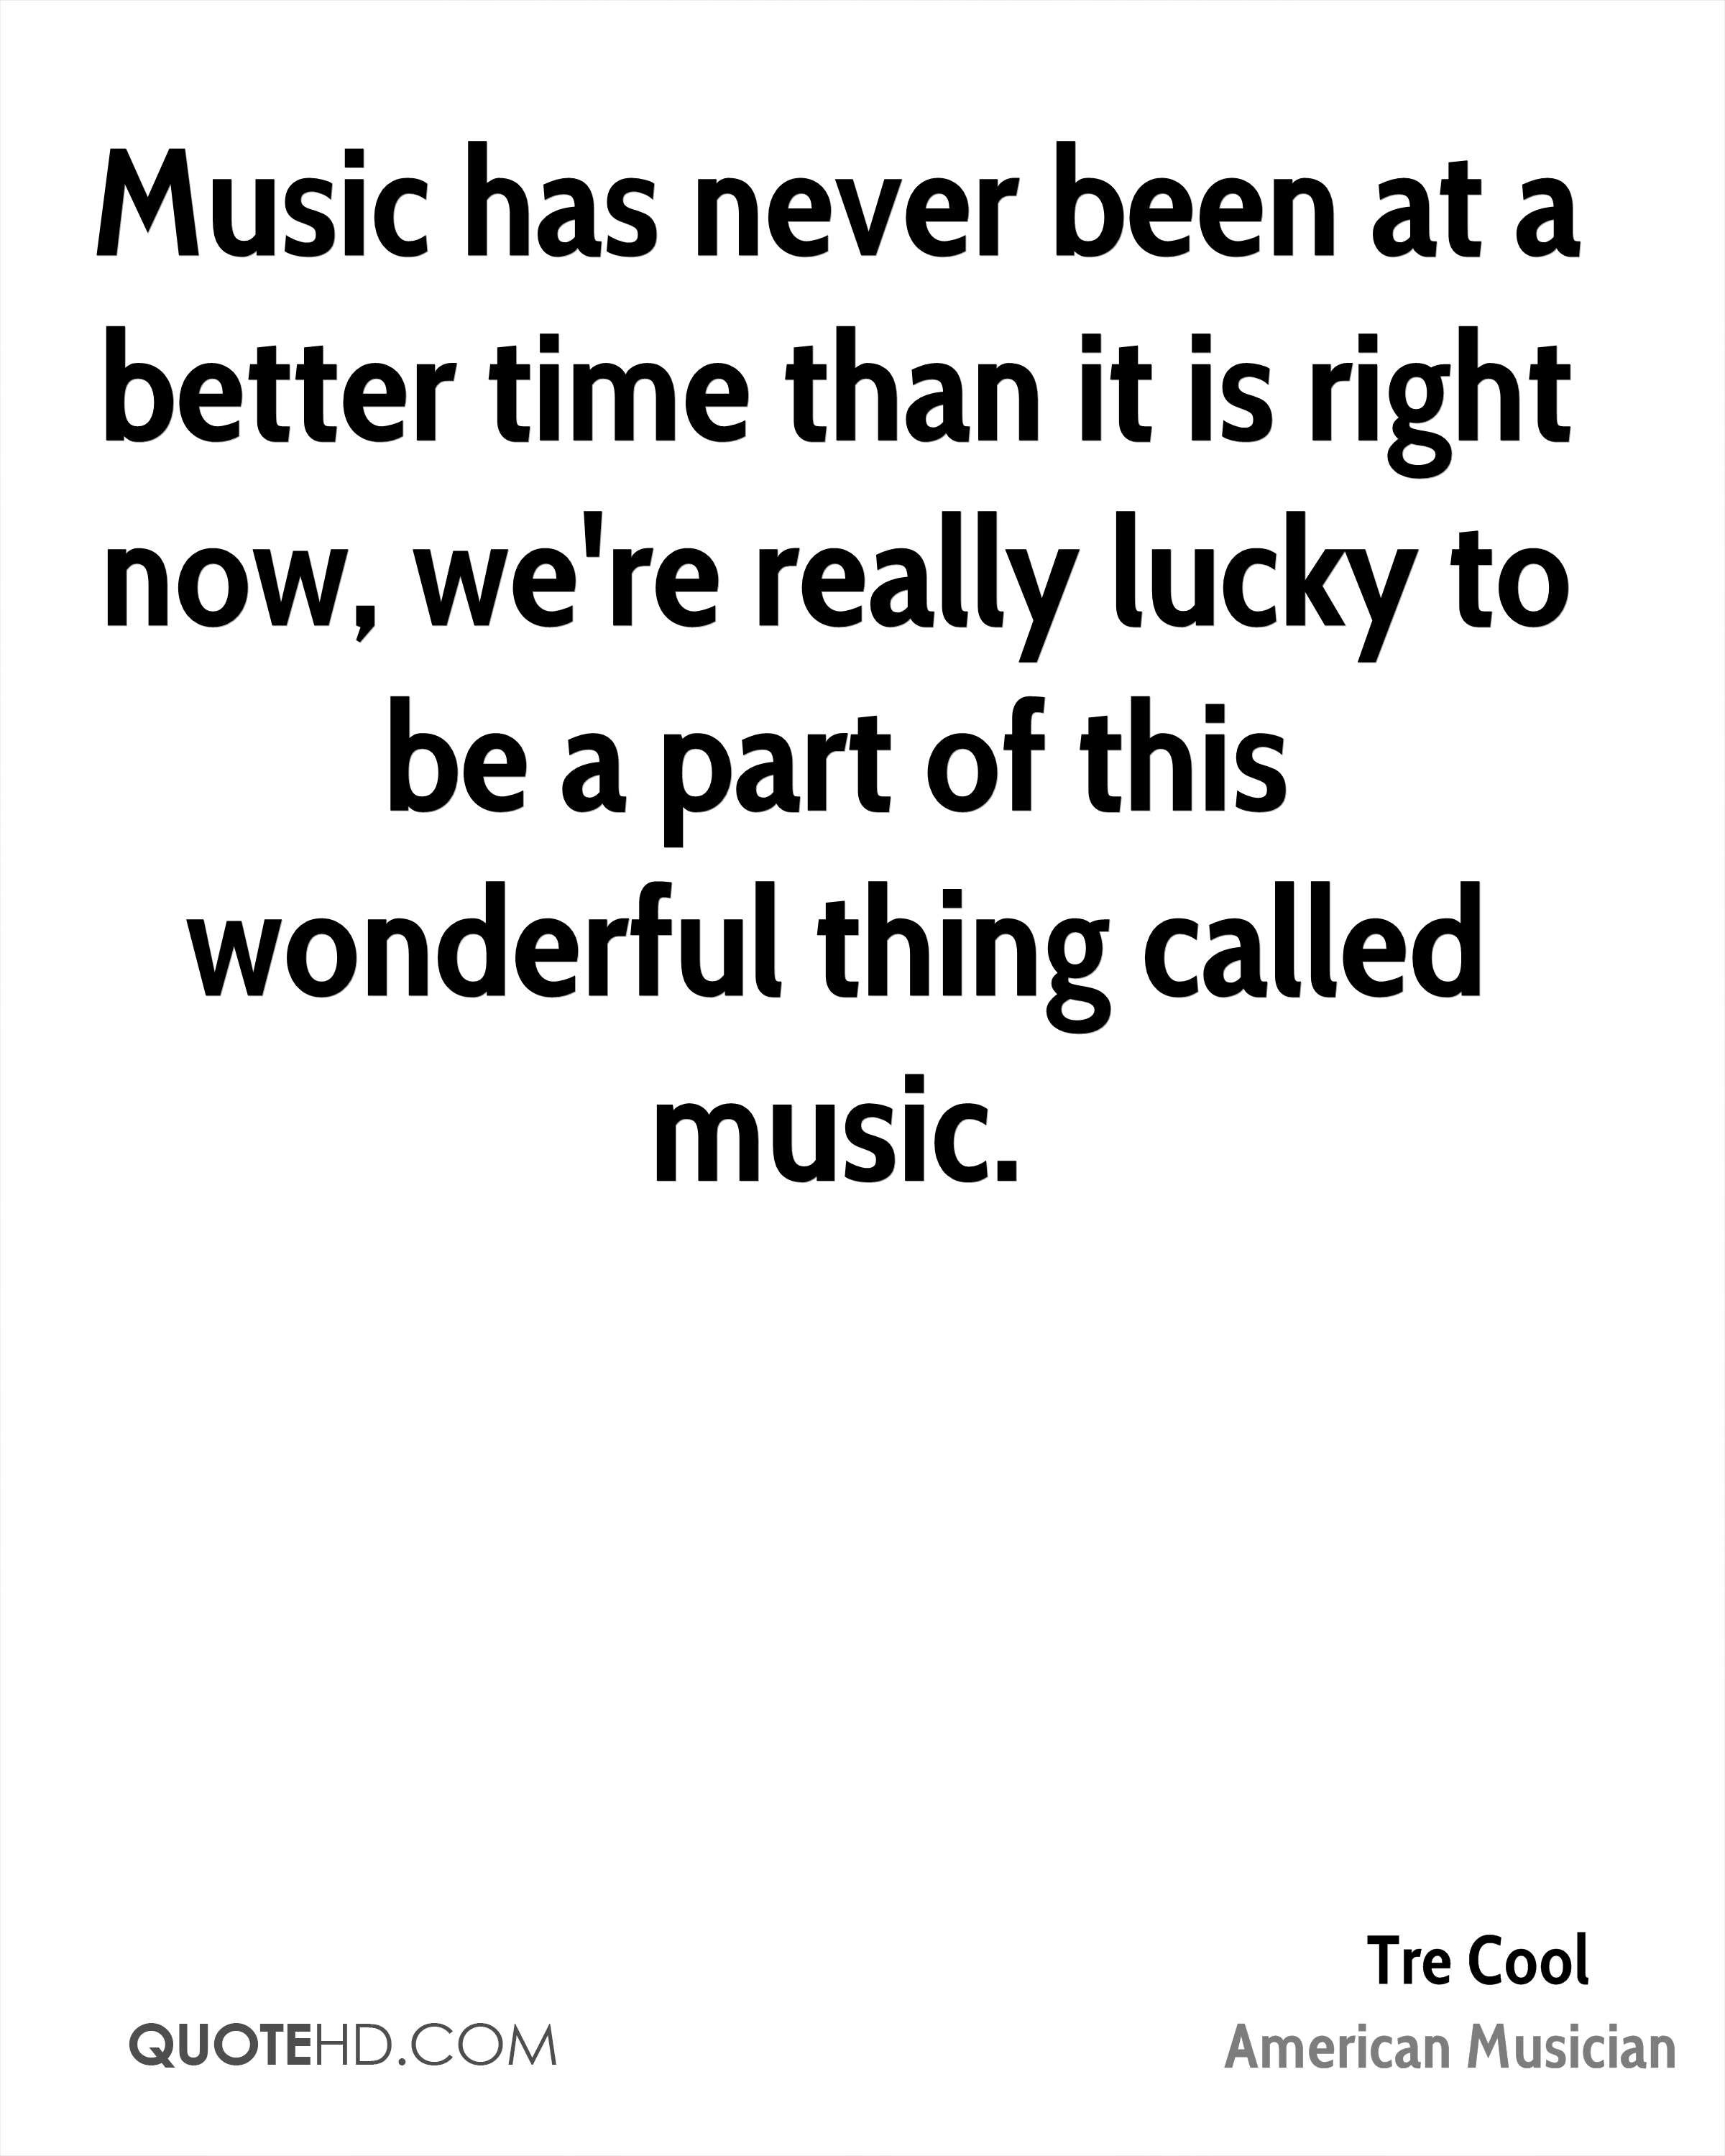 Music has never been at a better time than it is right now, we're really lucky to be a part of this wonderful thing called music.